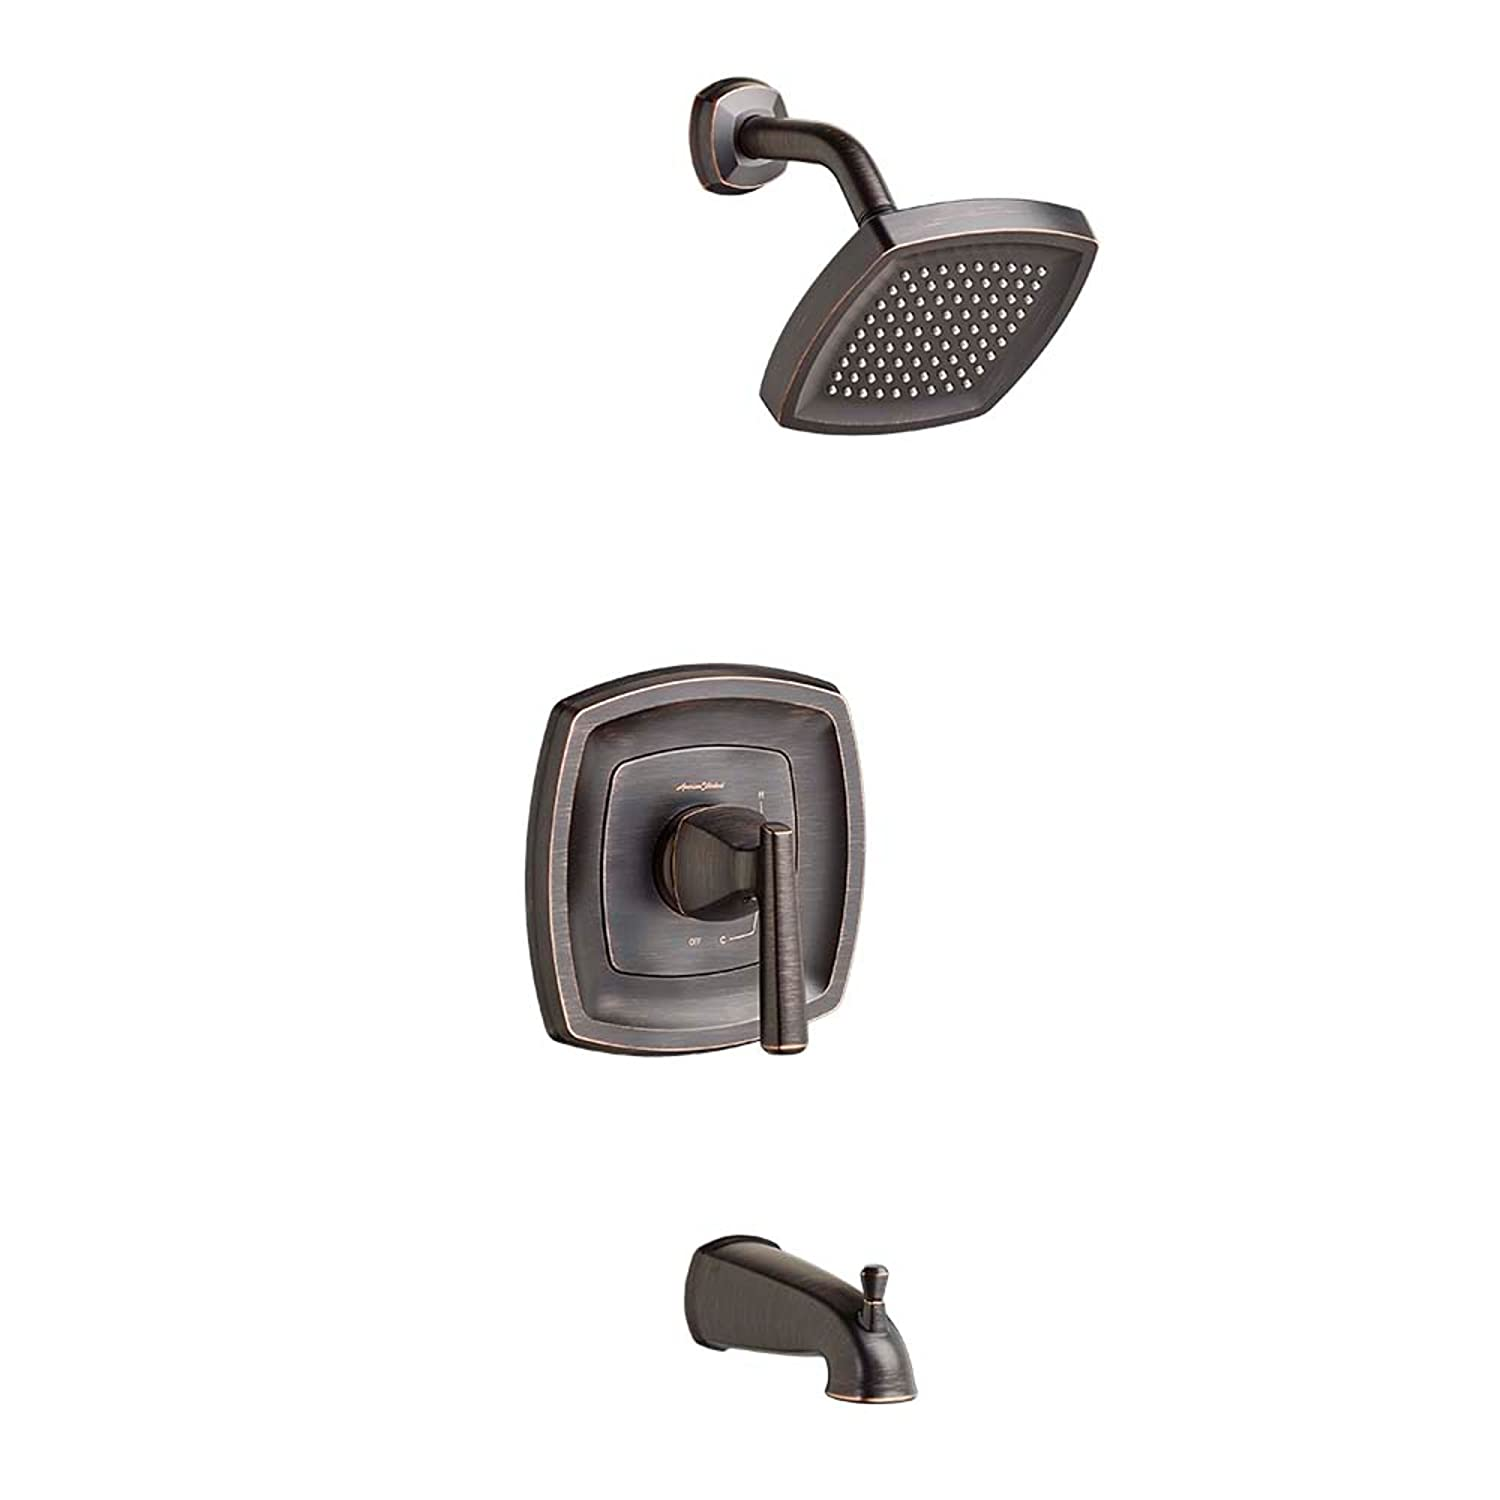 American Standard T018502.278 Edgemere Bath/Shower Trim Kit - 2.5 gpm, Legacy Bronze